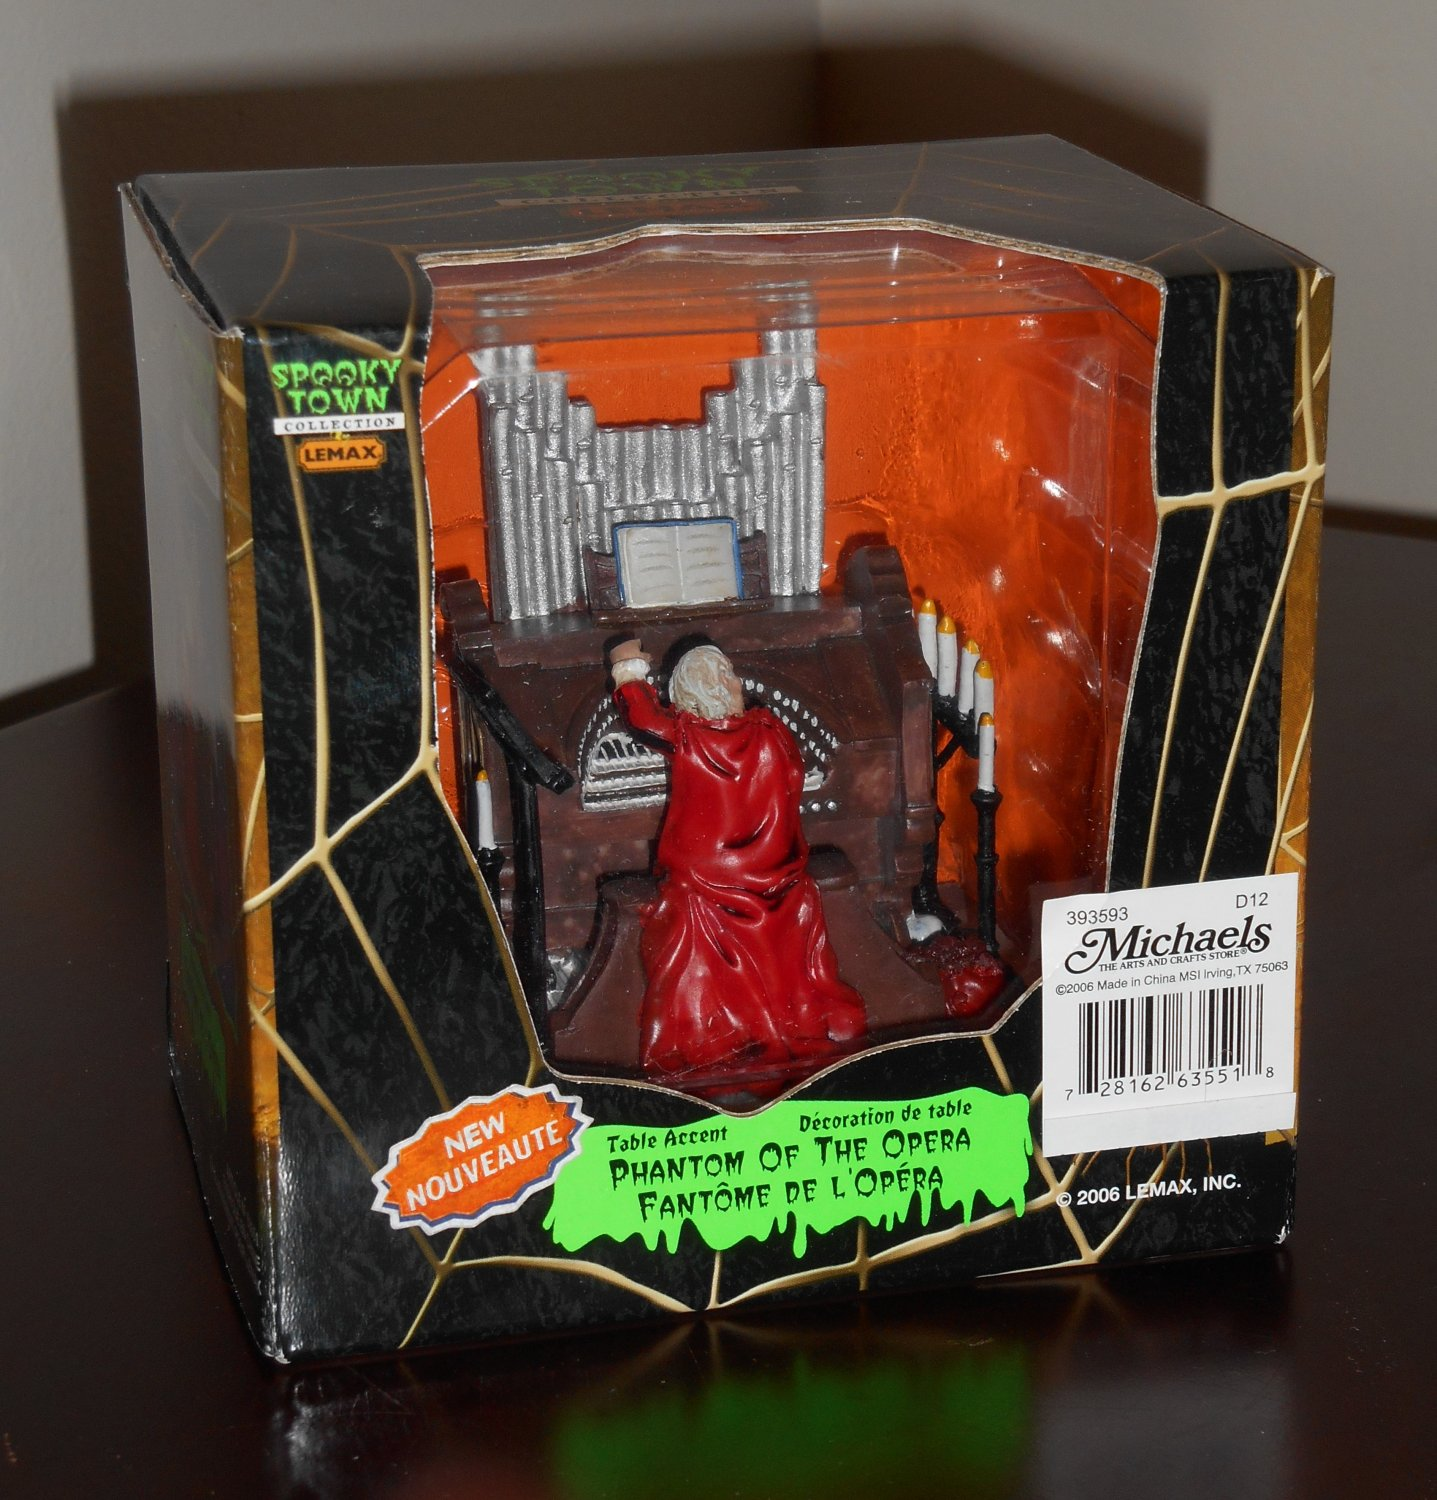 Phantom of the Opera Figurine Lemax 63551 Spooky Town Collection Table Accent 2006 Halloween